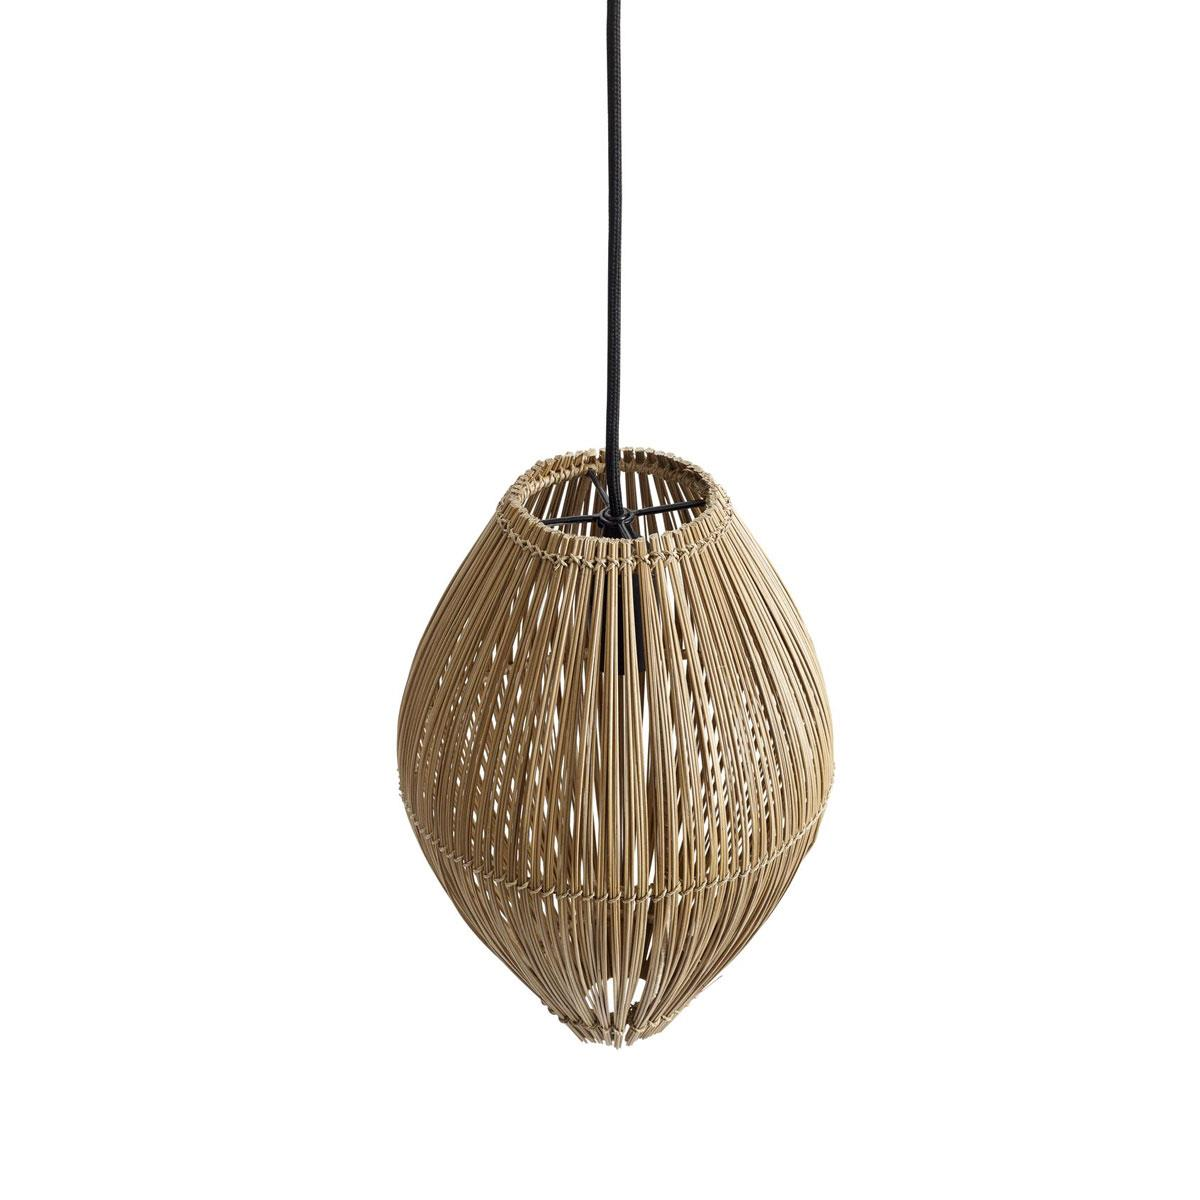 Picture of: Loftslampe Fishtrap S I Bambus H45cm Muubs